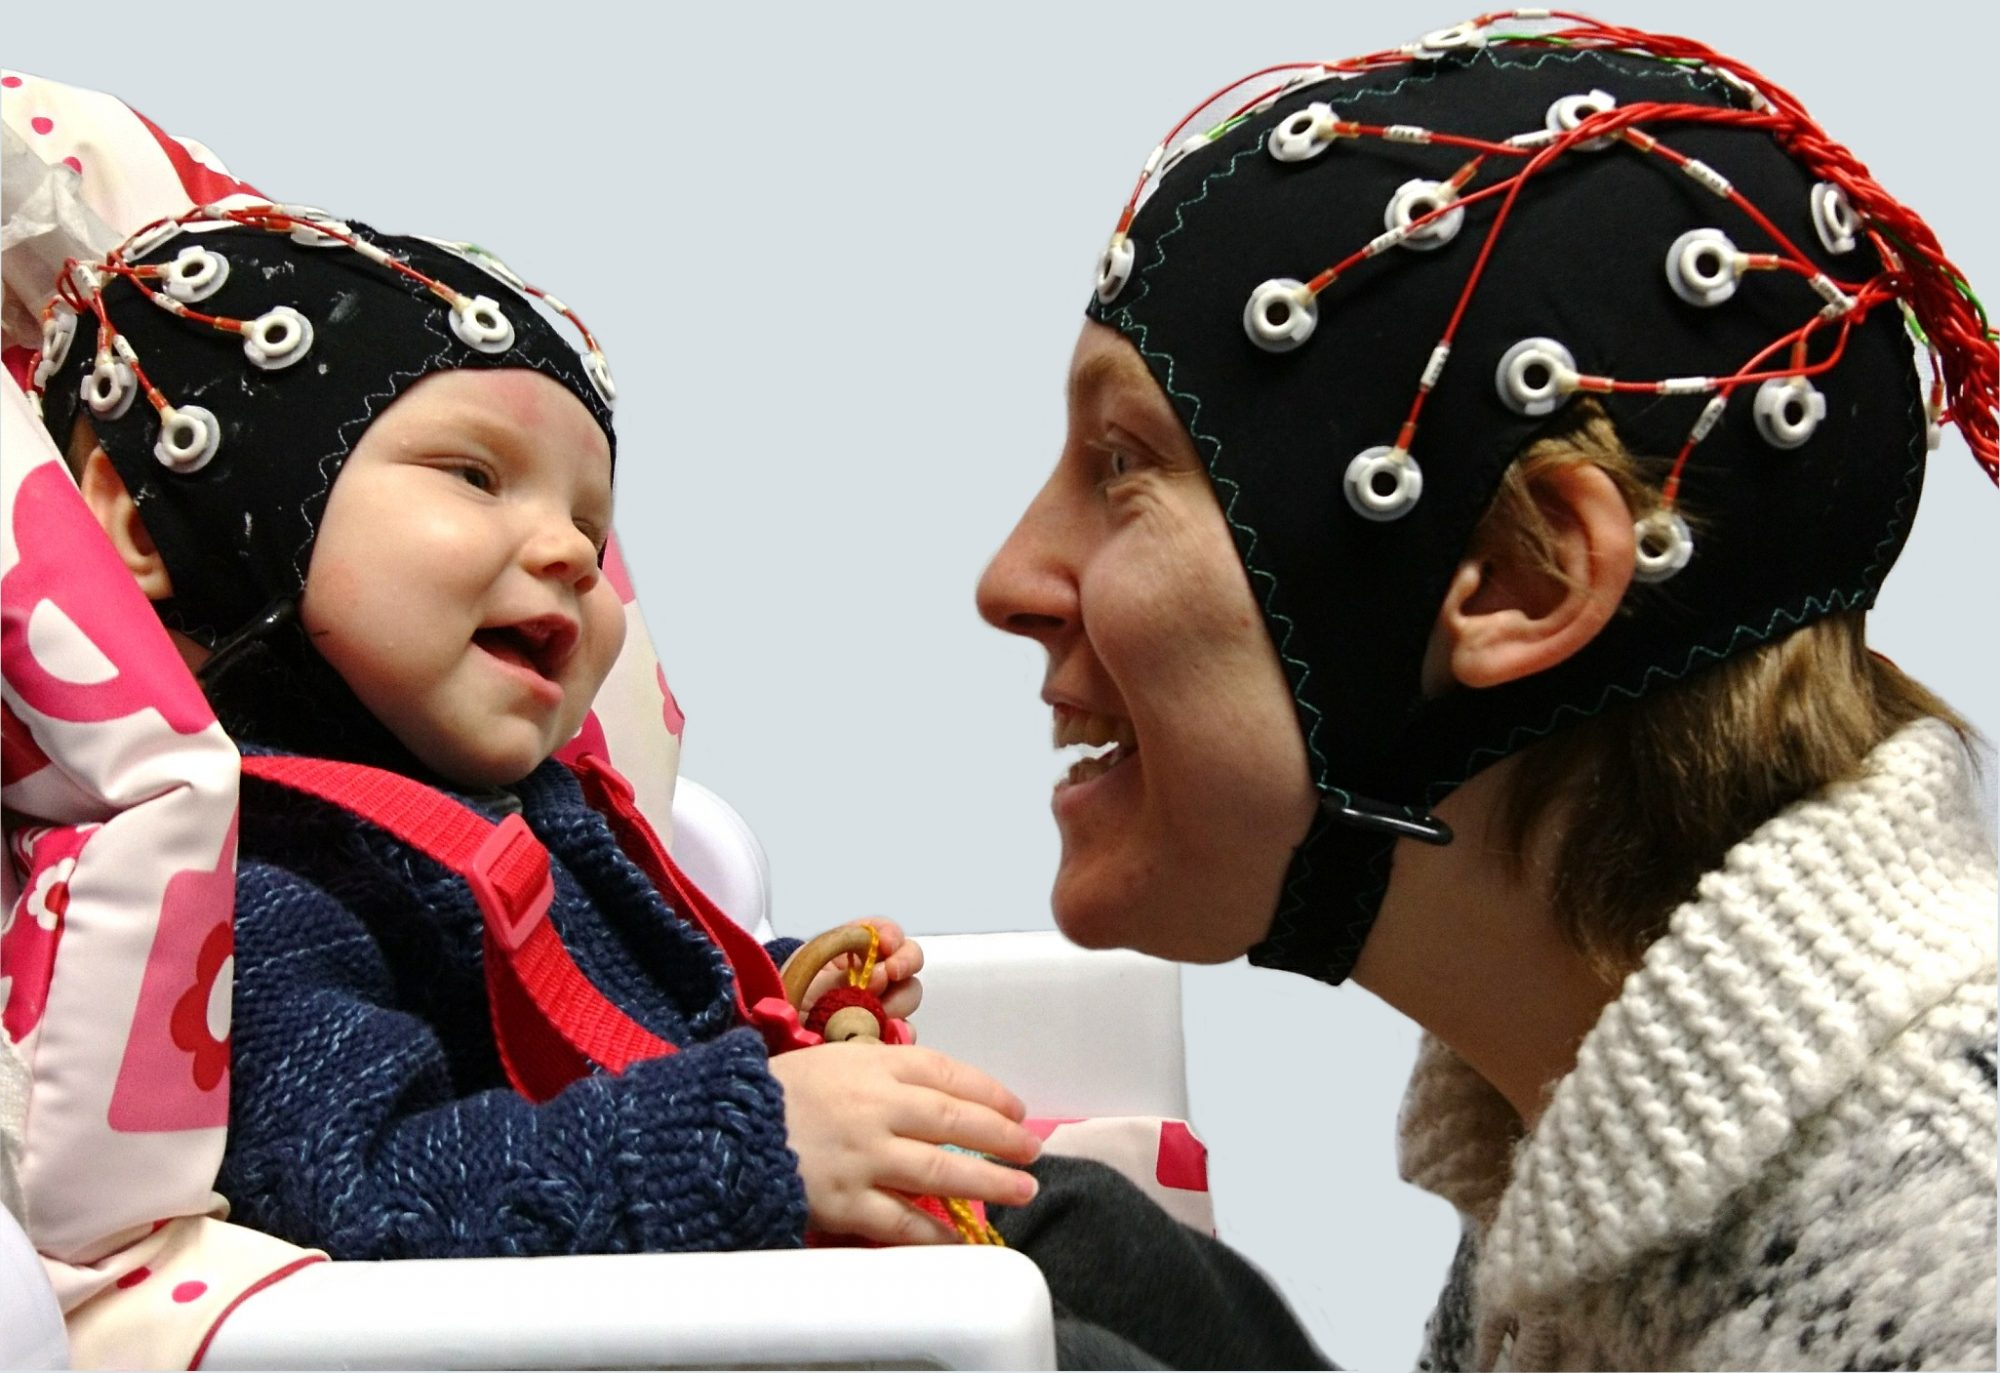 Making Eye Contact With a Baby Changes Both Your Brain Waves, Study Says